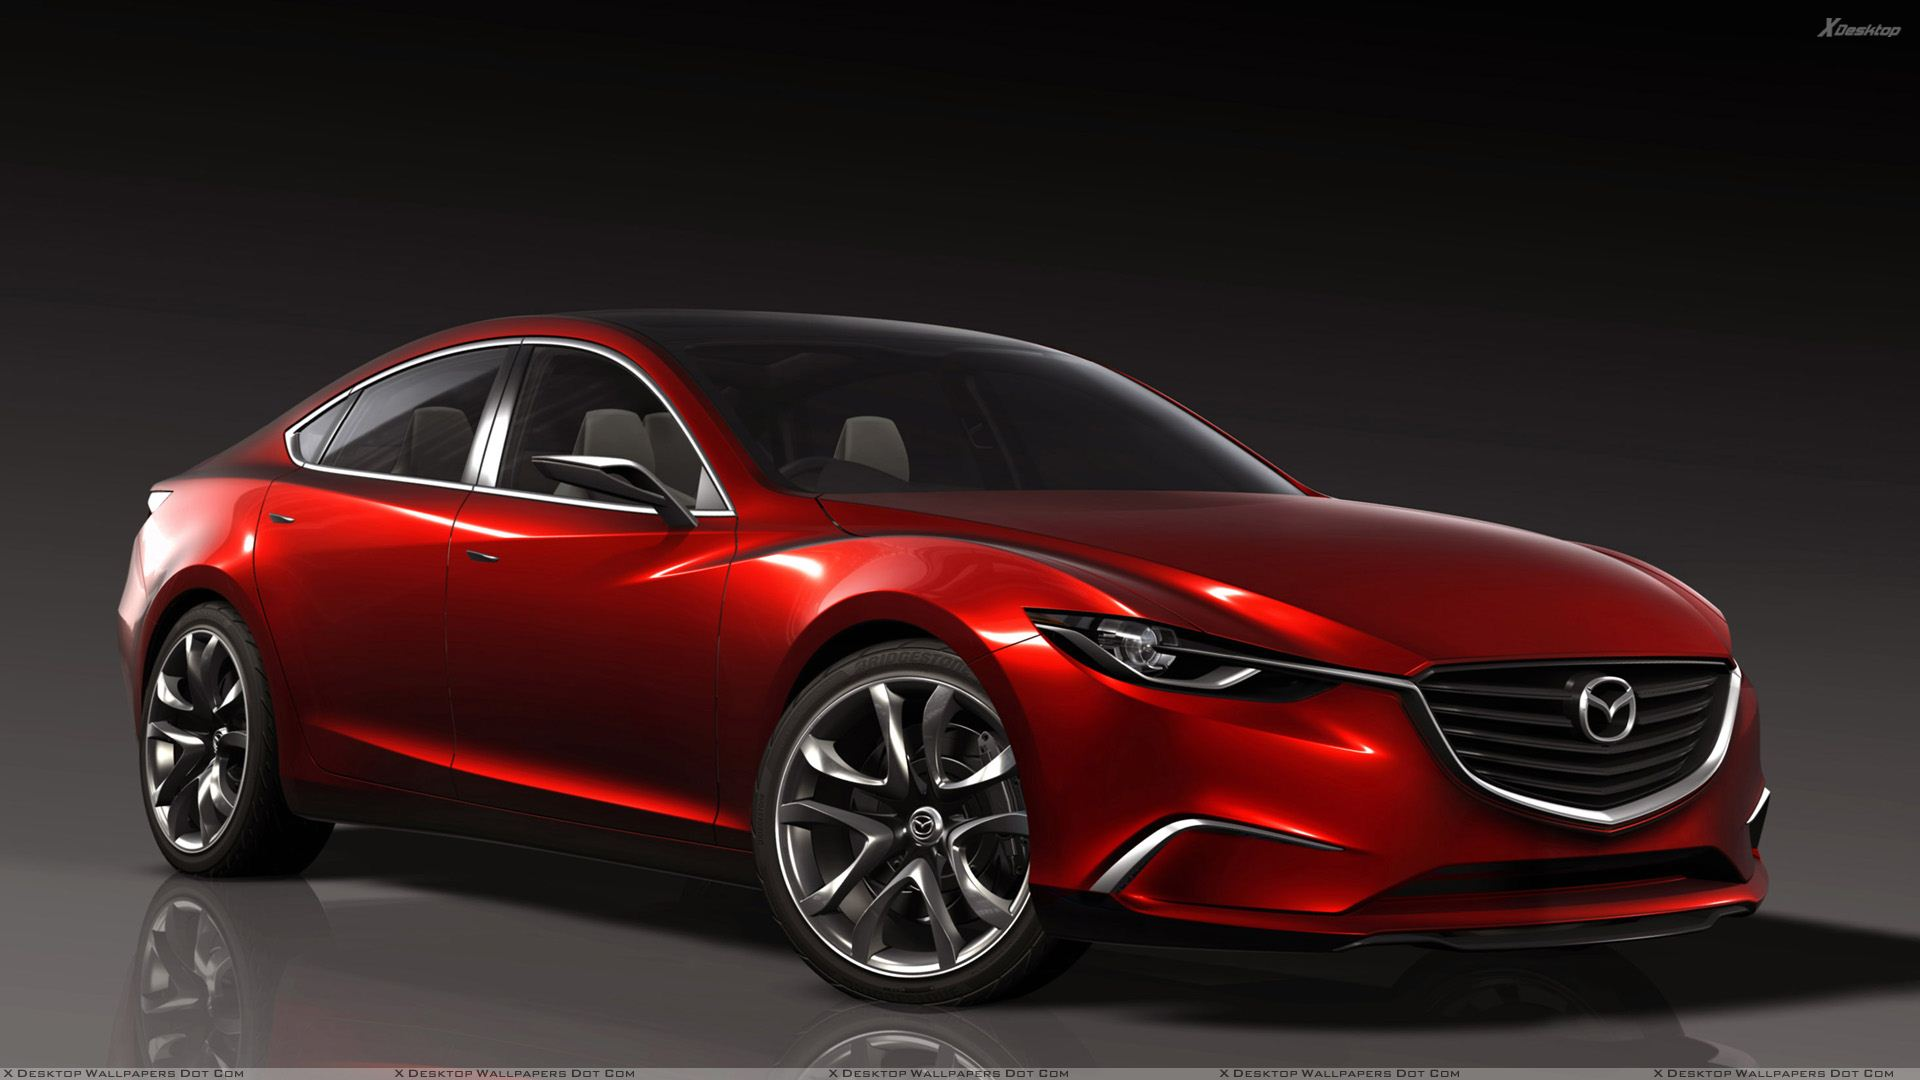 Mazda Wallpapers Photos Images In HD